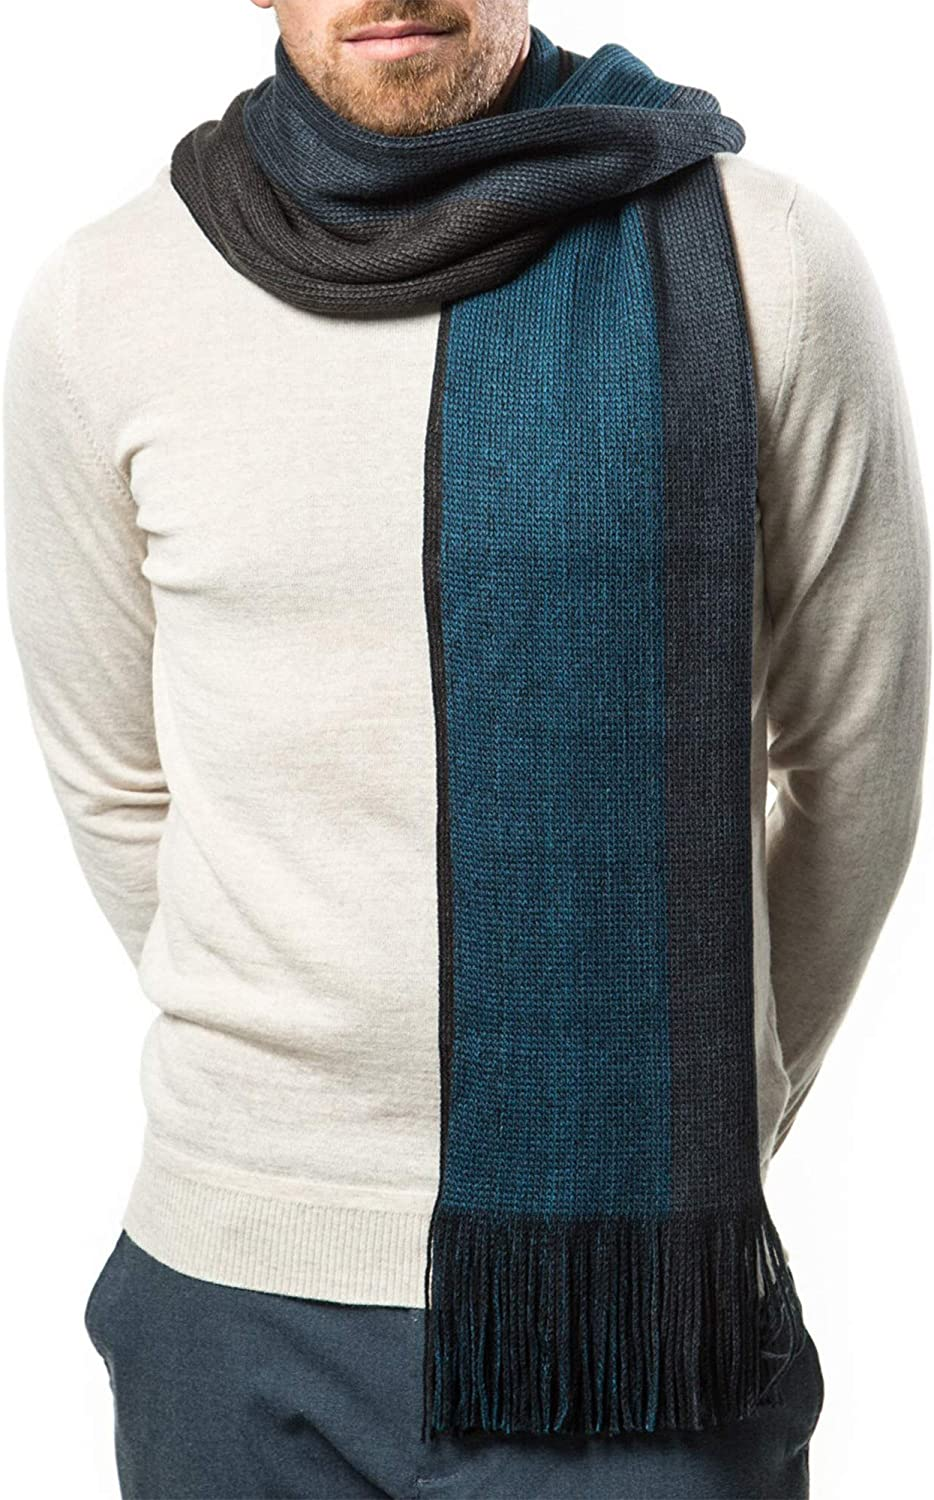 Mens Scarf, Knit Striped Scarf, Long Winter Mens Scarves In An Elegant Gift  Box - Azure Ash - One Size at Amazon Men's Clothing store